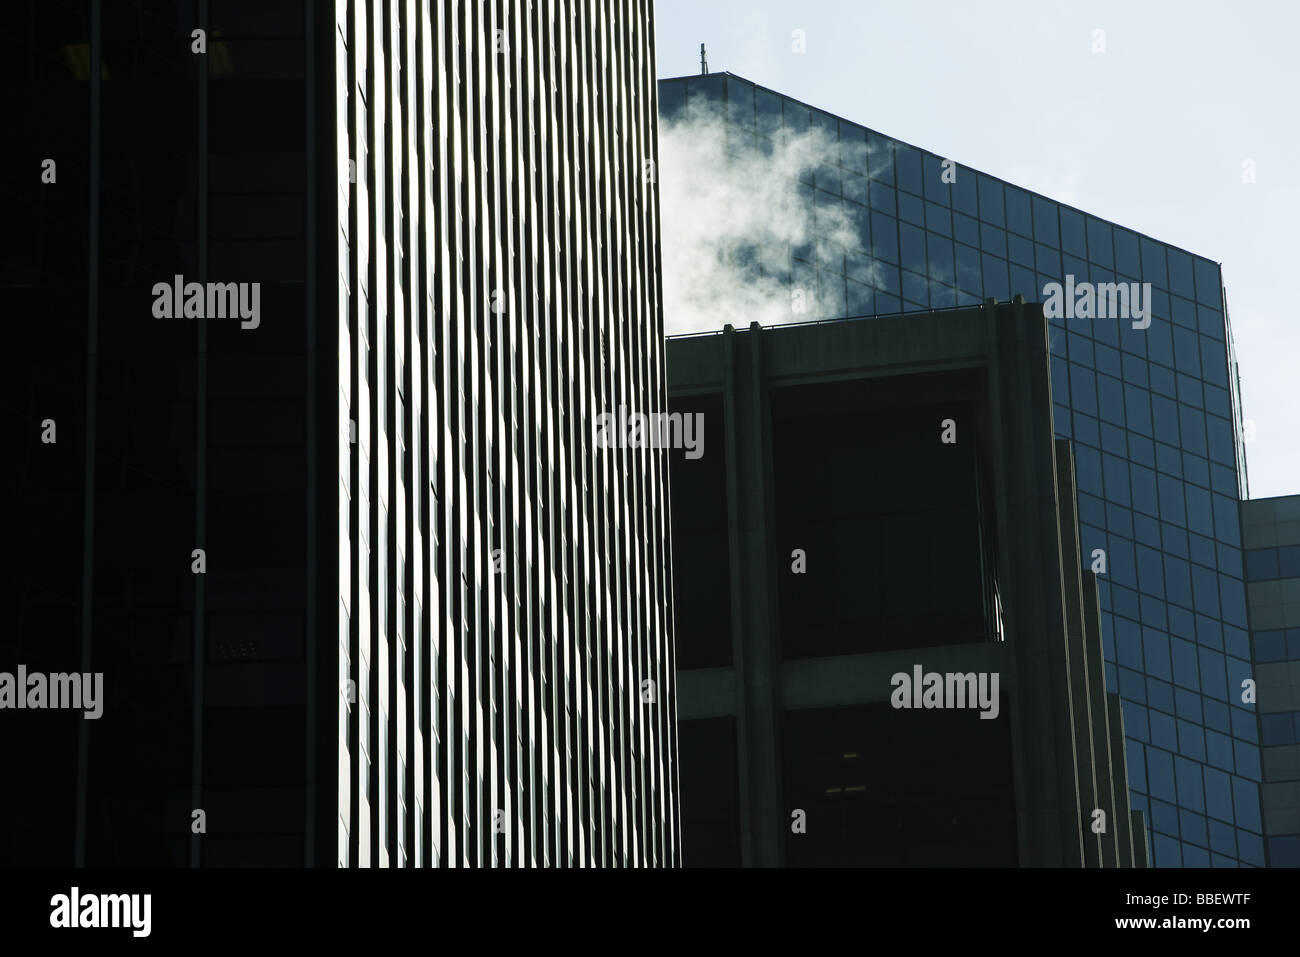 High rise office buildings side by side, steam vapor billowing from rooftop, low angle view - Stock Image